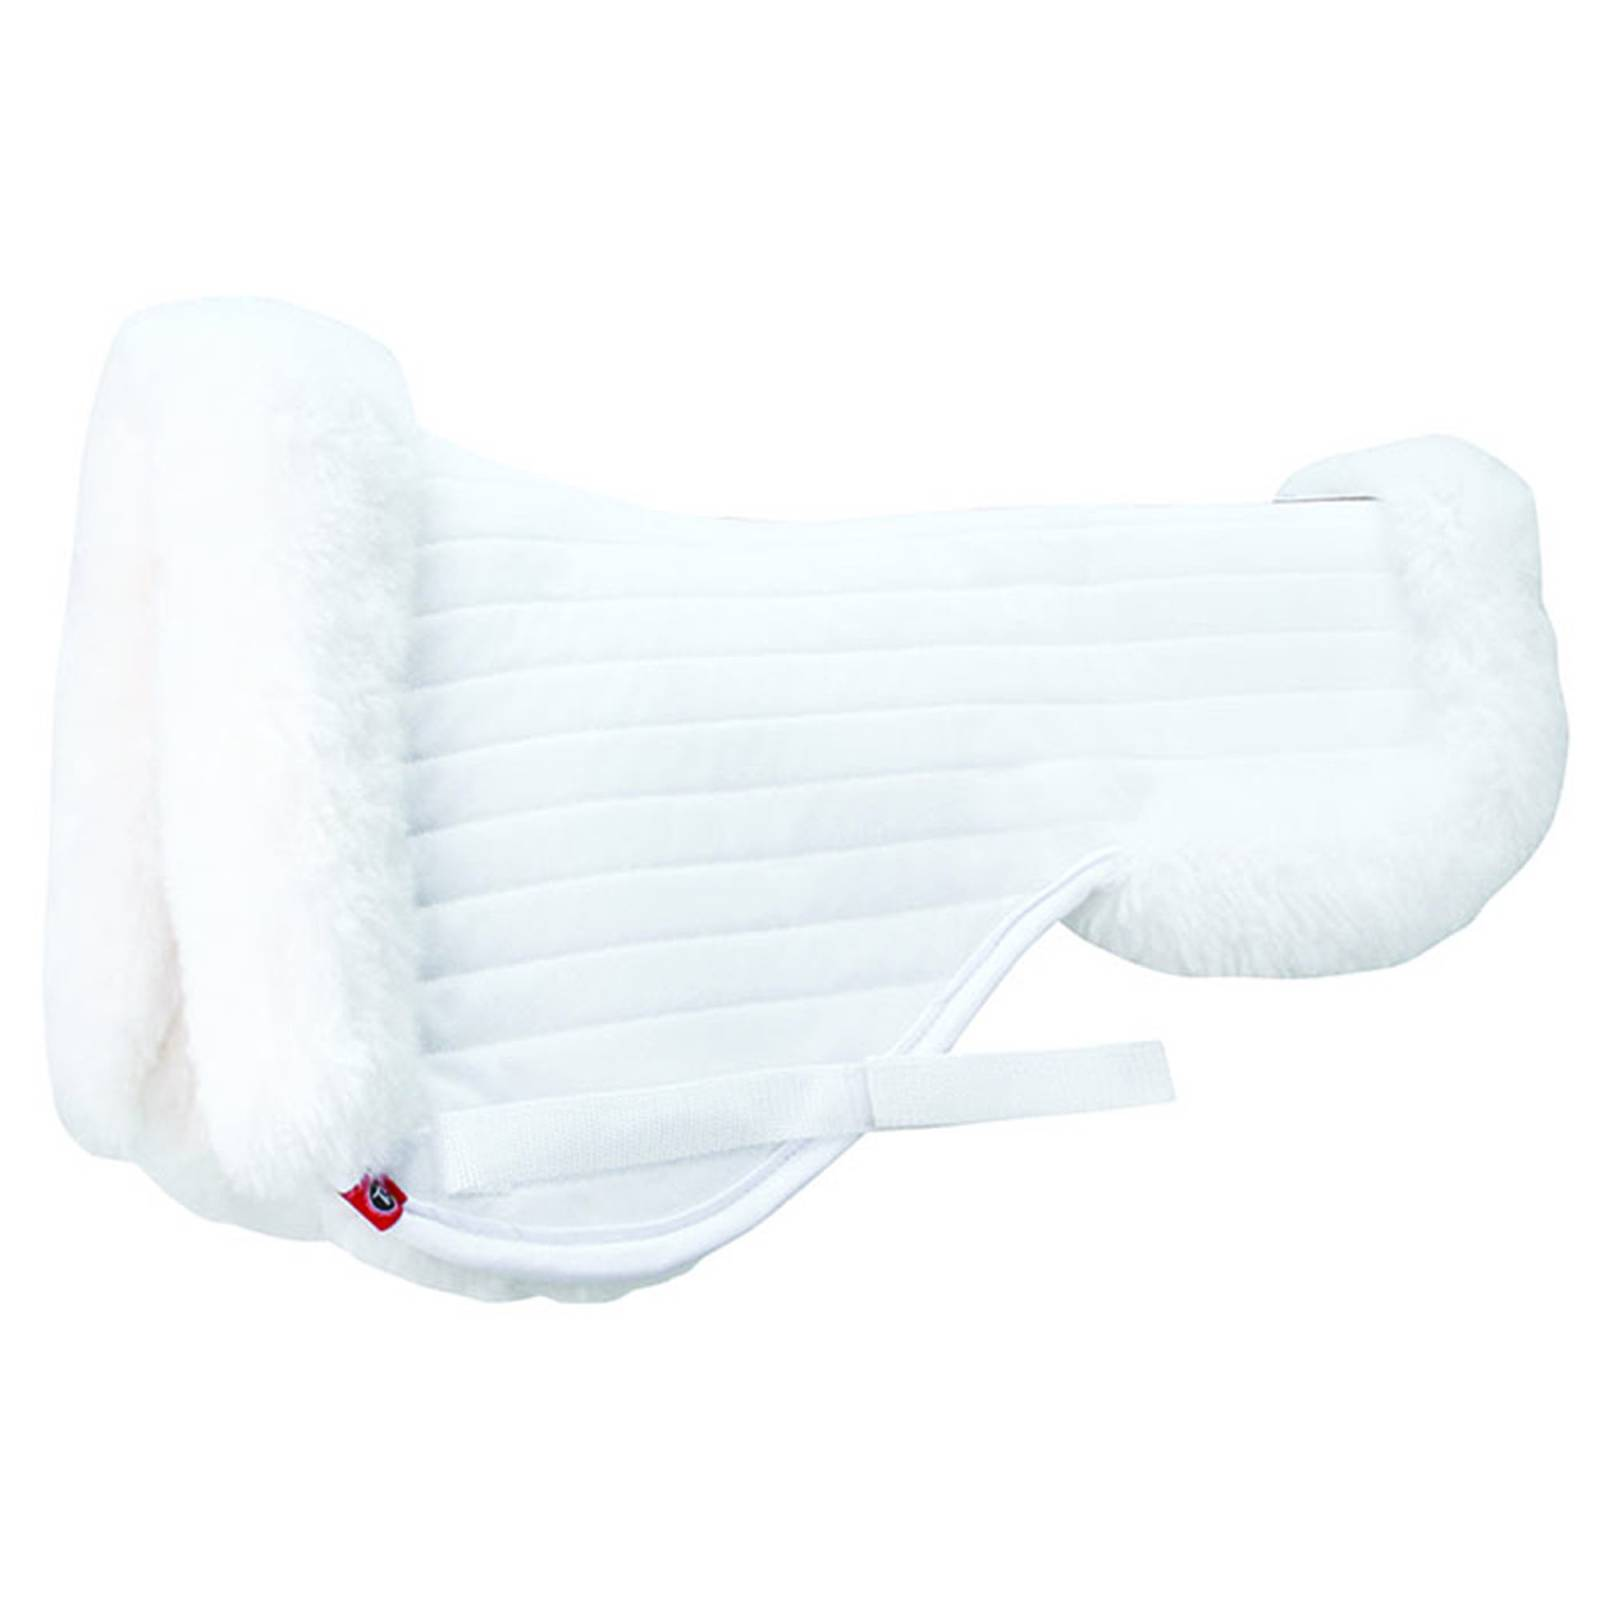 Matrix T3 Traditional Sheepskin Dressage Half Pad